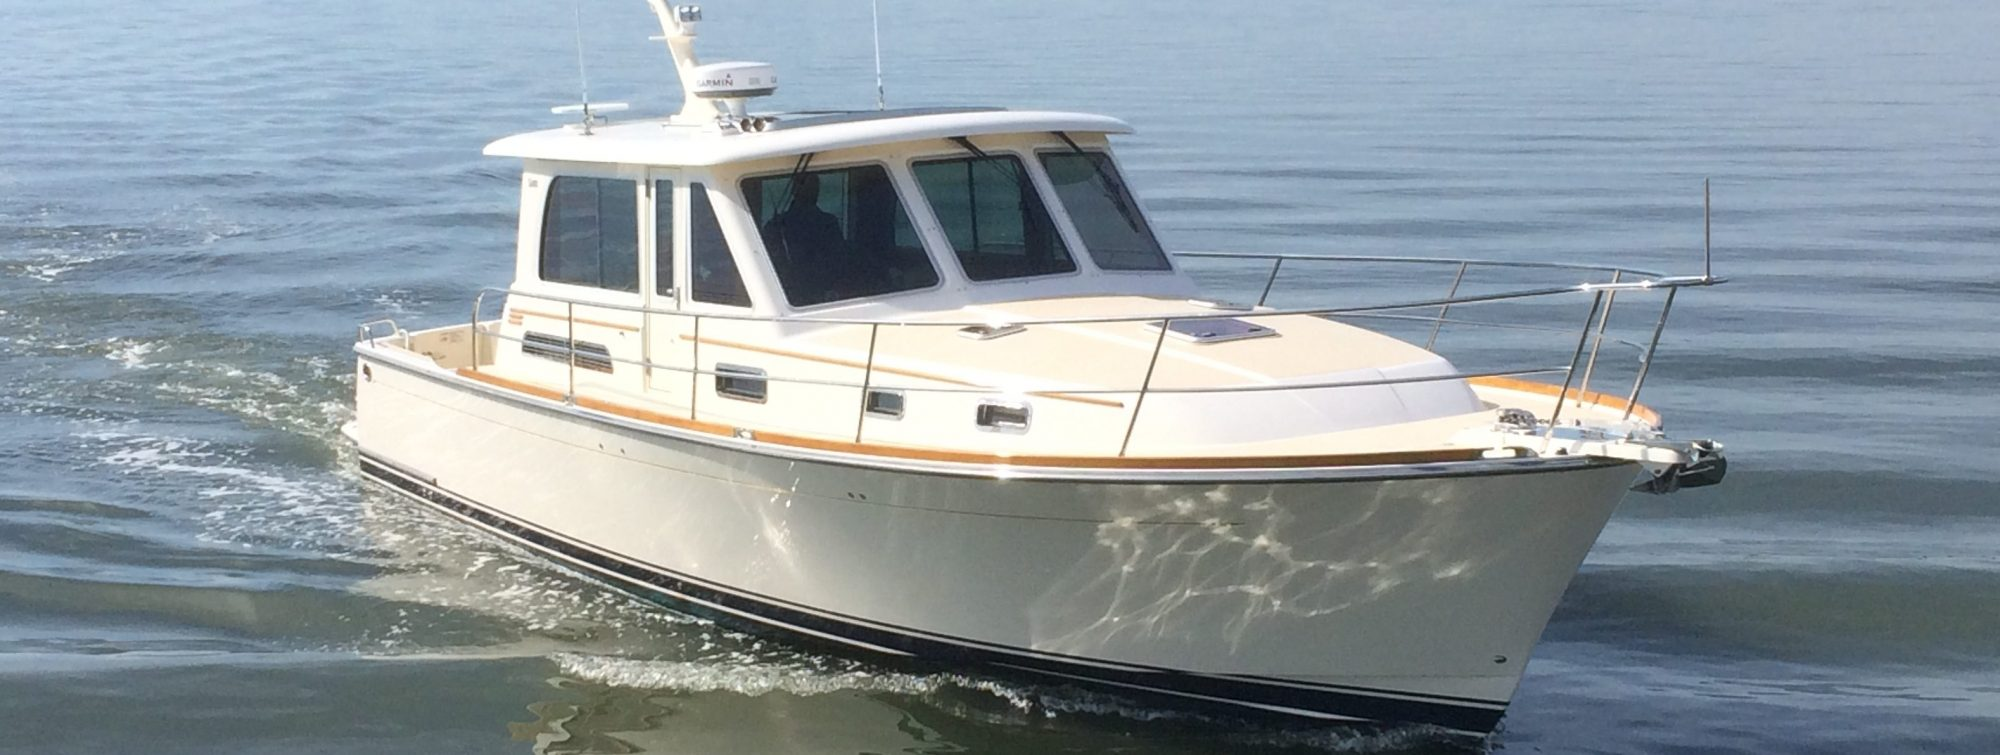 cabin cruiser brokerage boat for sale